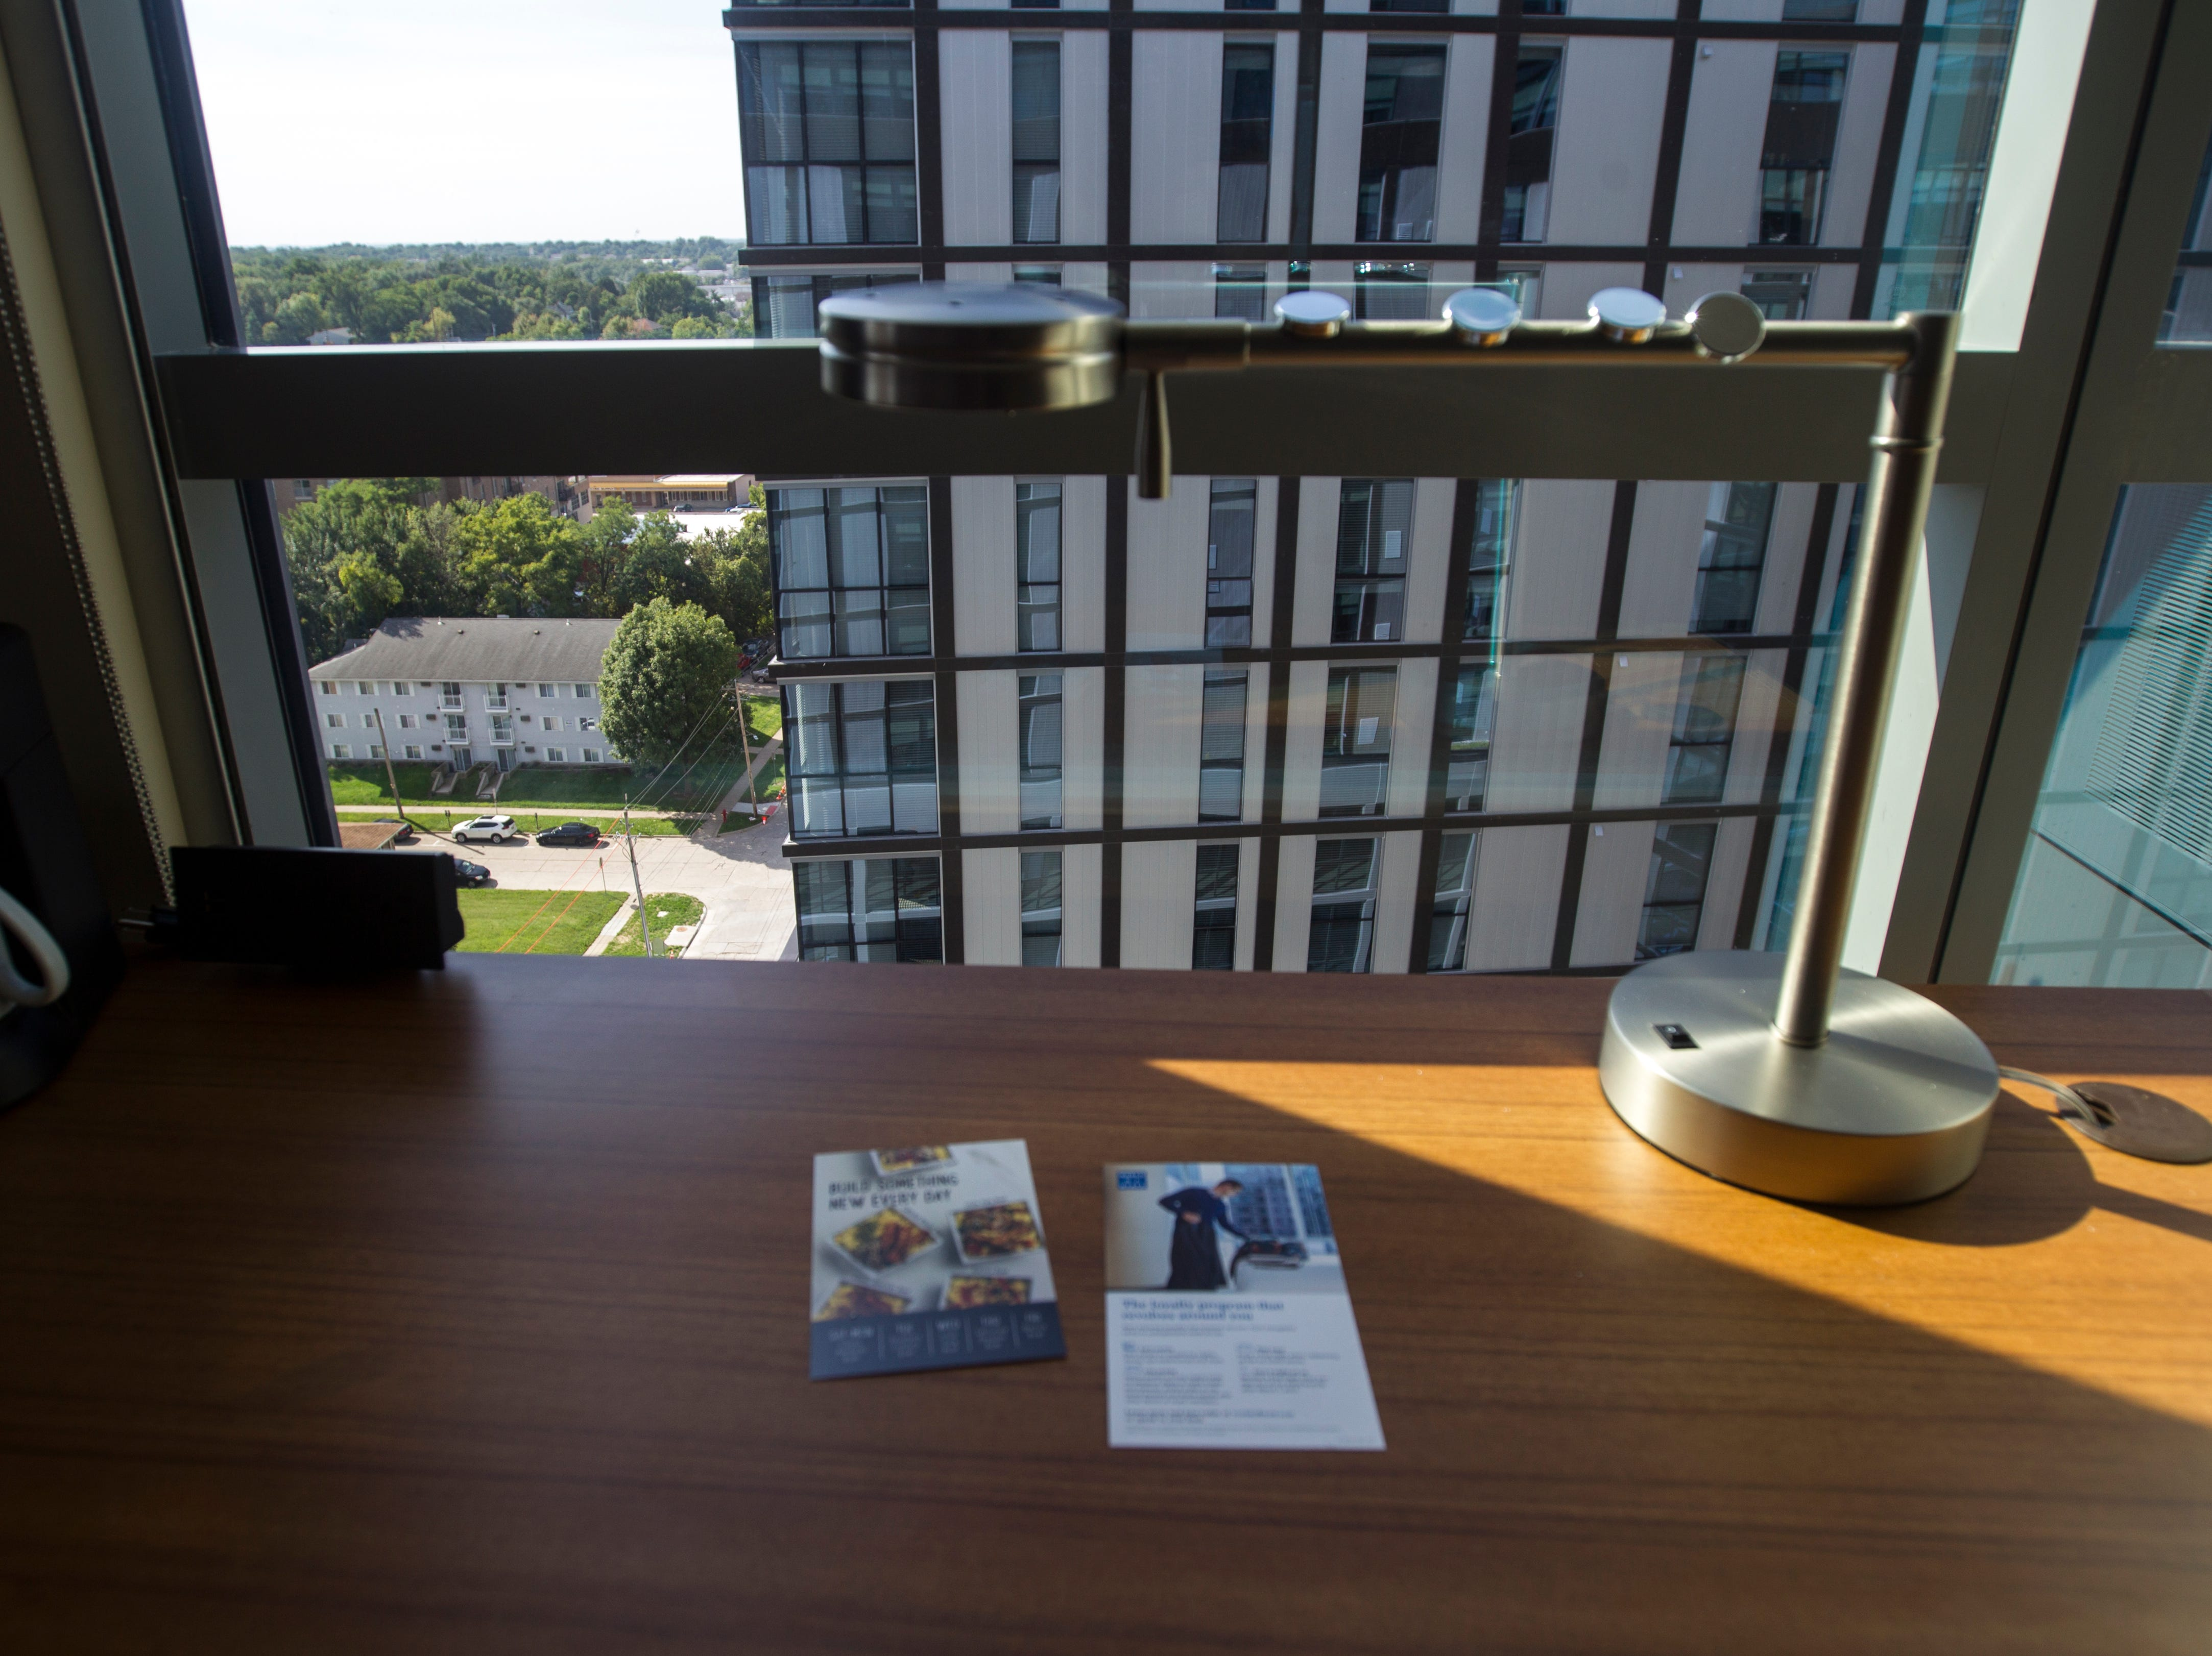 A desk overlooks a courtyard from a 10th floor room during a tour on Tuesday, Sept. 4, 2018, at Hyatt Place on the corner of Court and Linn Streets in downtown Iowa City.